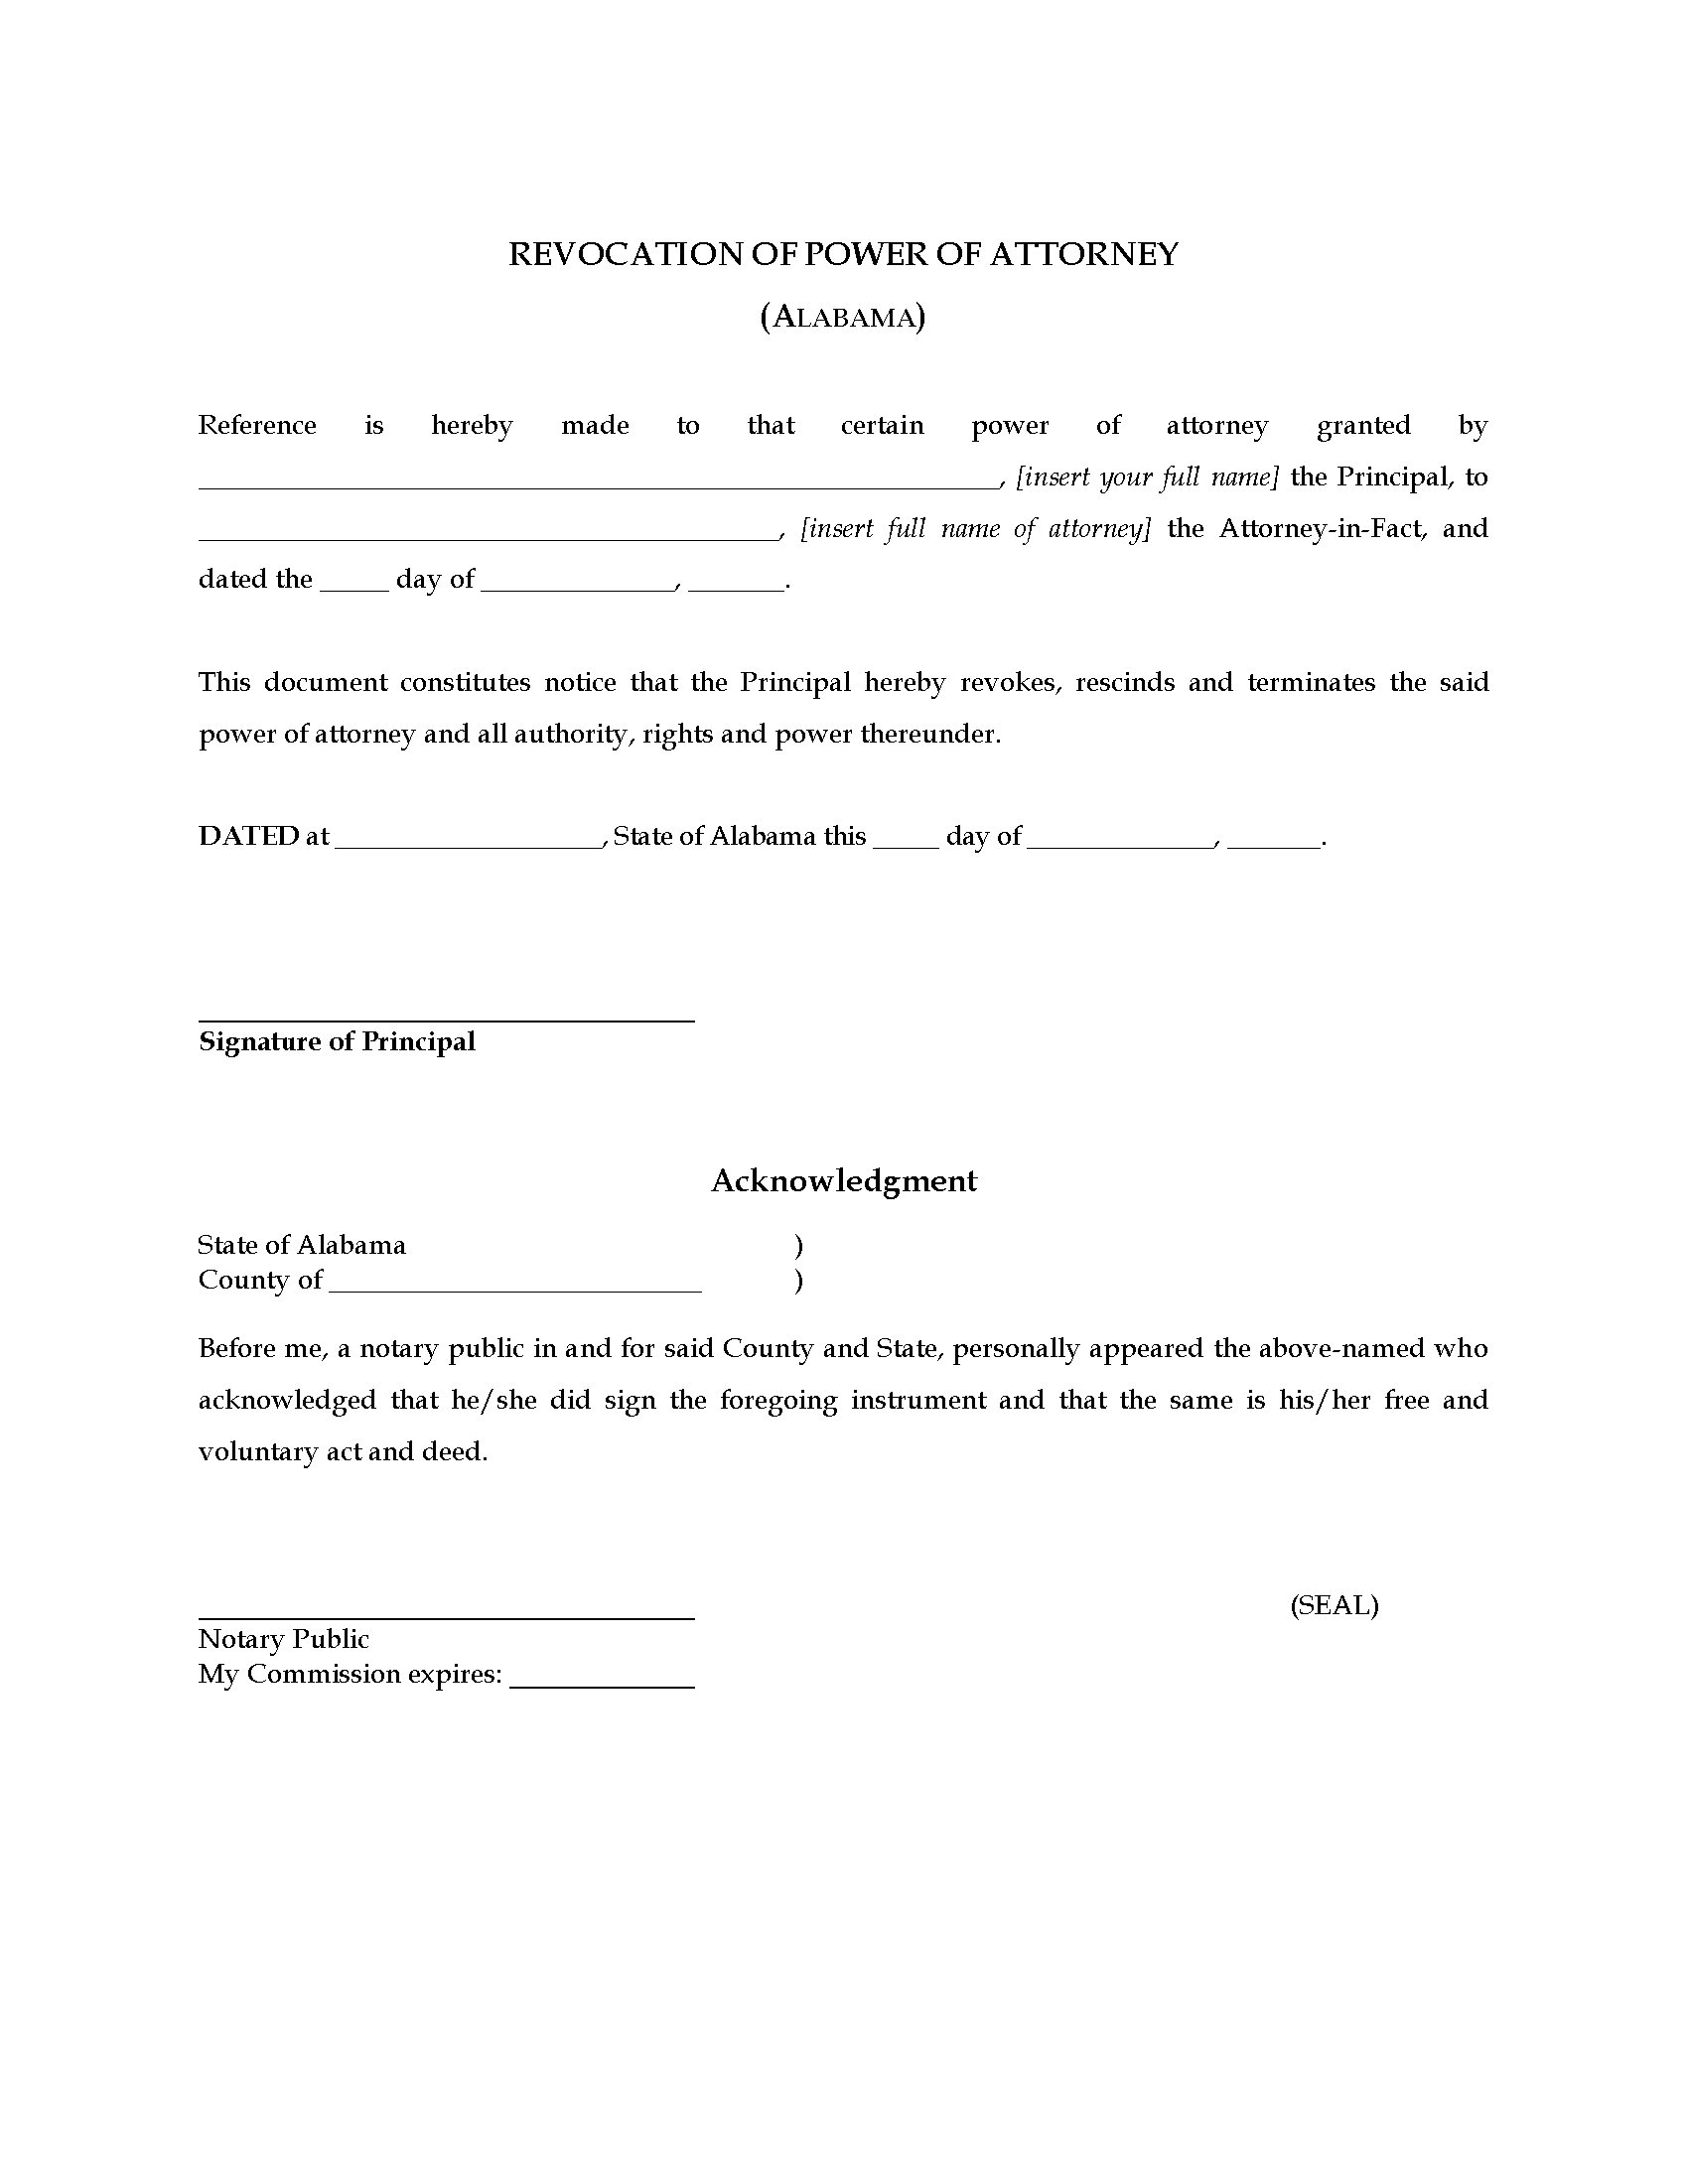 Alabama Revocation of Power of Attorney | Legal Forms and ...